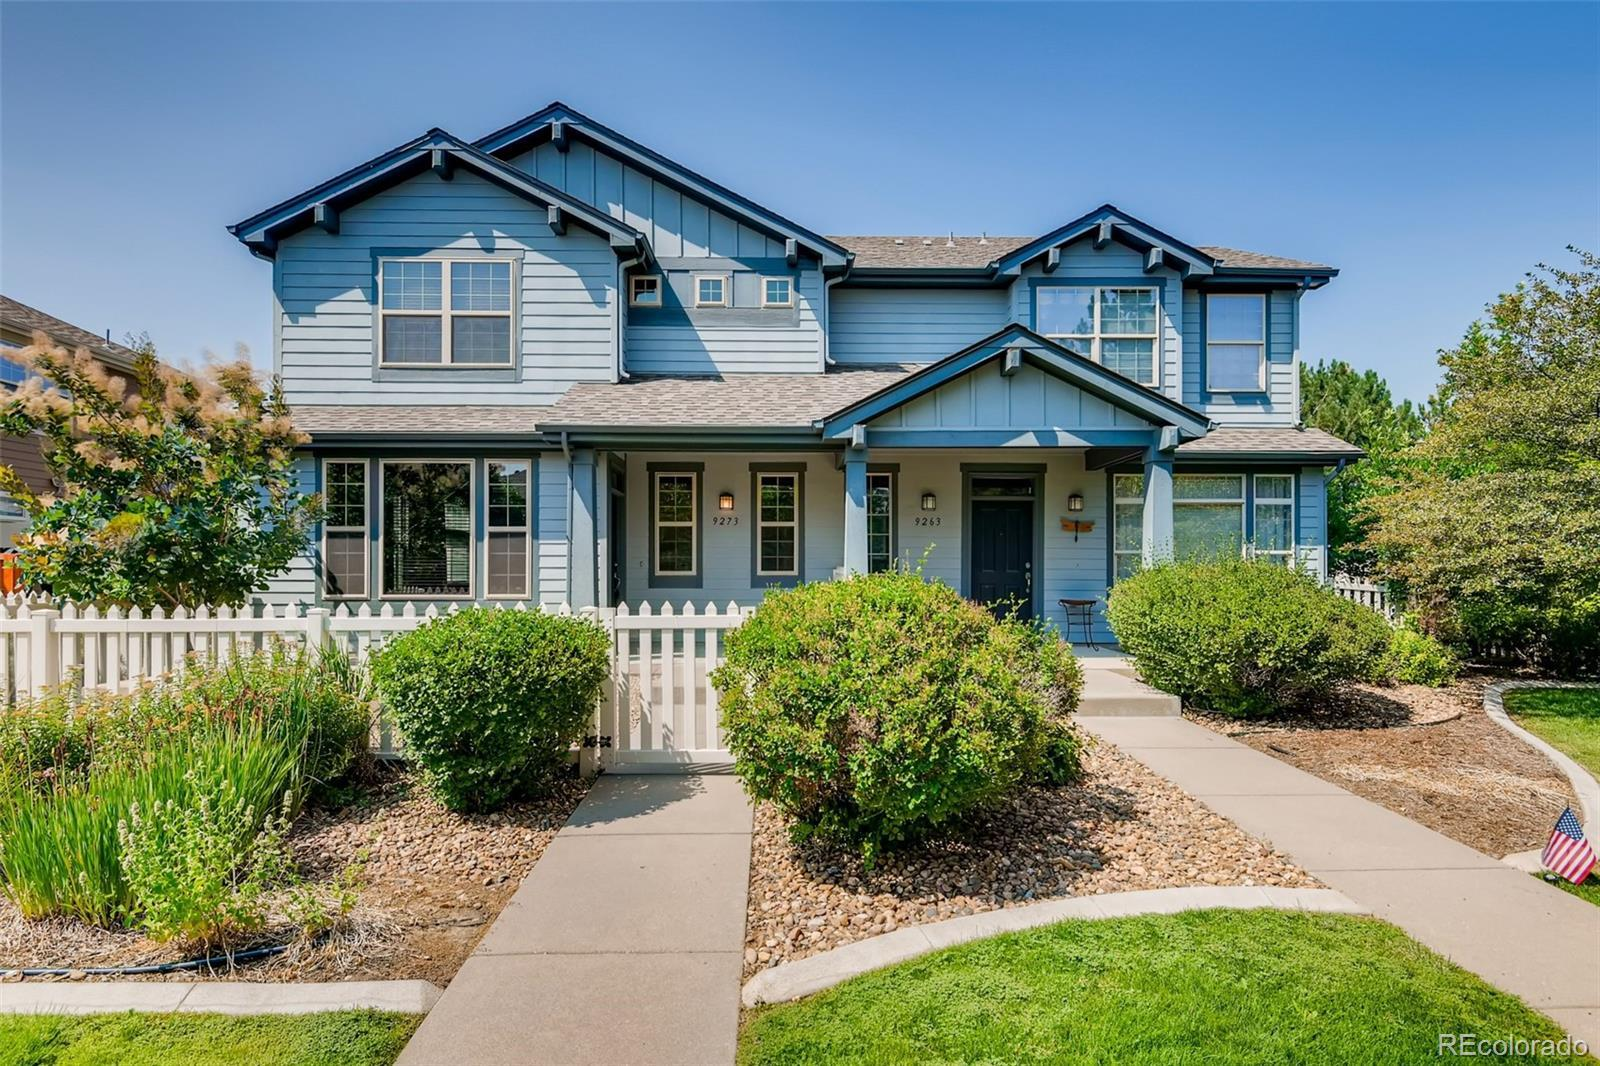 9273 W 107th Place, Westminster, CO 80021 - #: 6394173